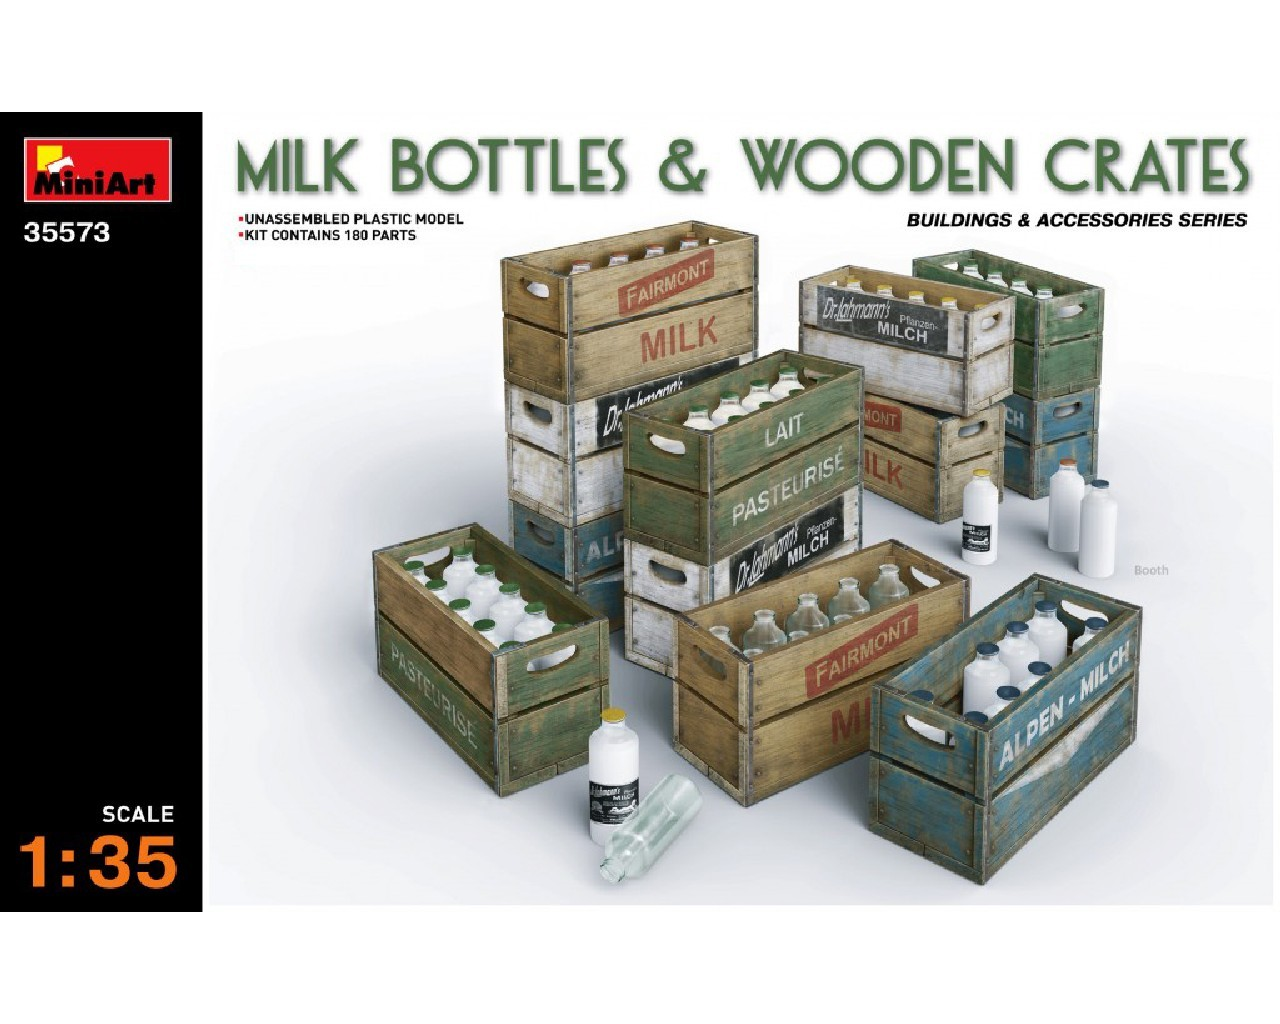 1/35 Milk Bottles and Wooden Crates